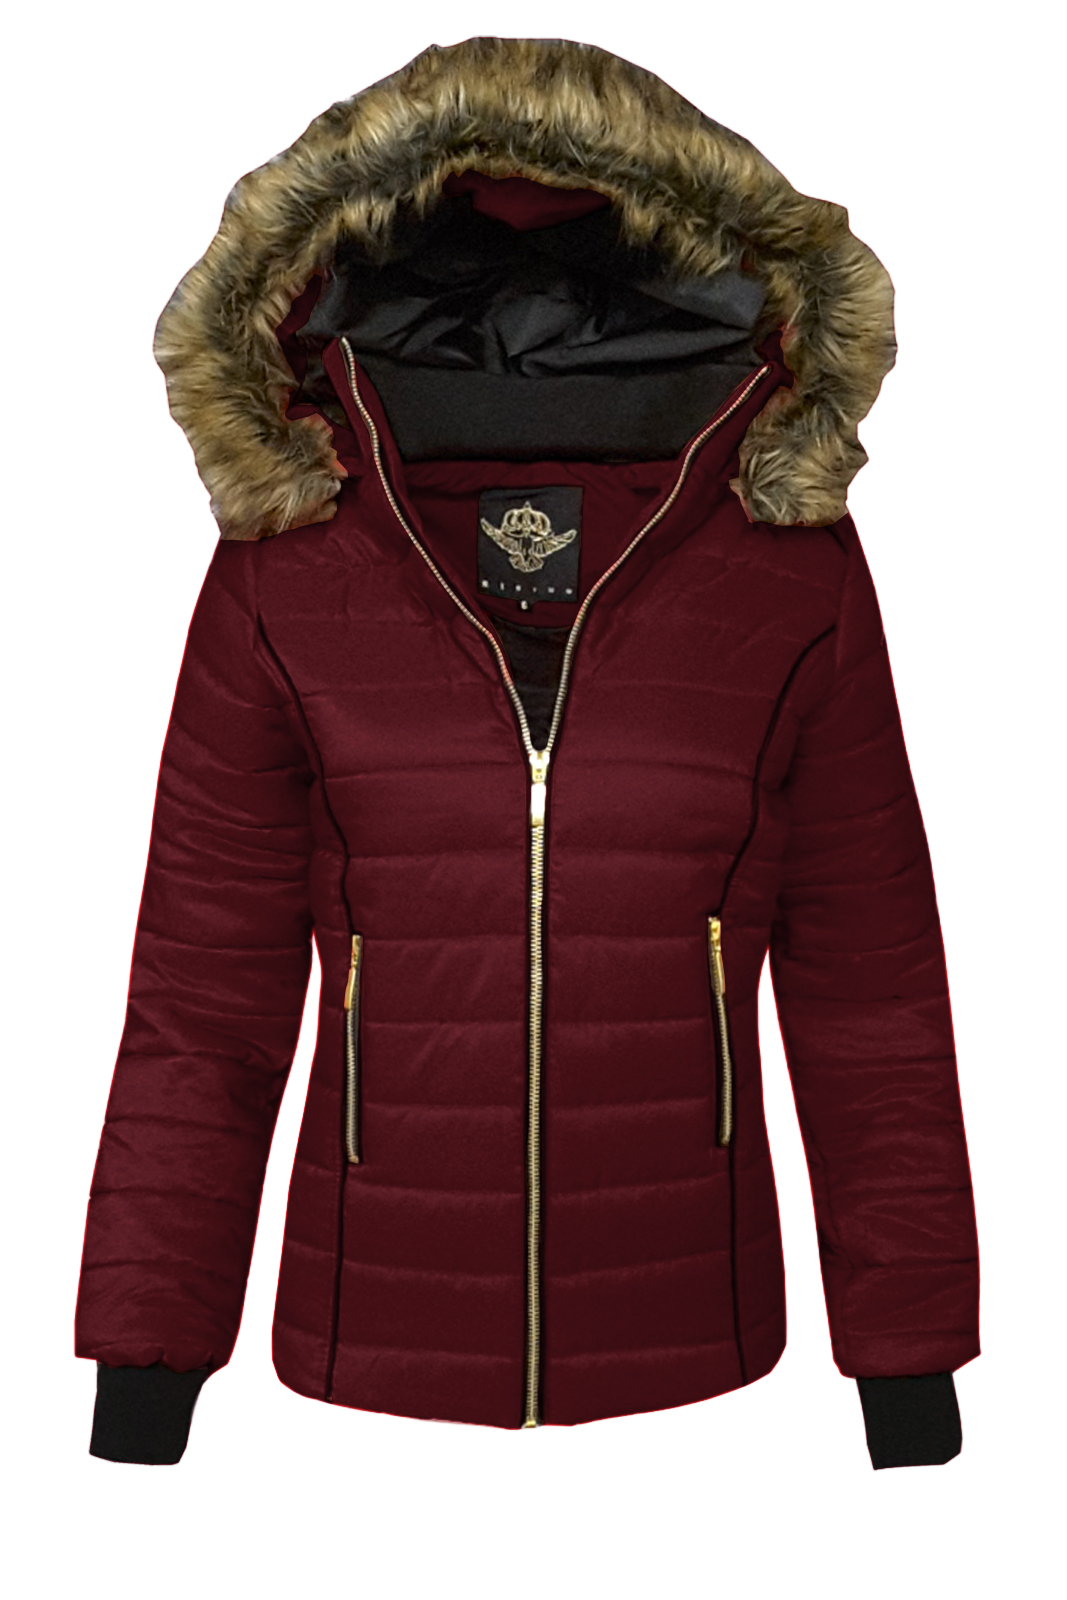 Shop our Collection of Women's Quilted Jackets at needloanbadcredit.cf for the Latest Designer Brands & Styles. FREE SHIPPING AVAILABLE!